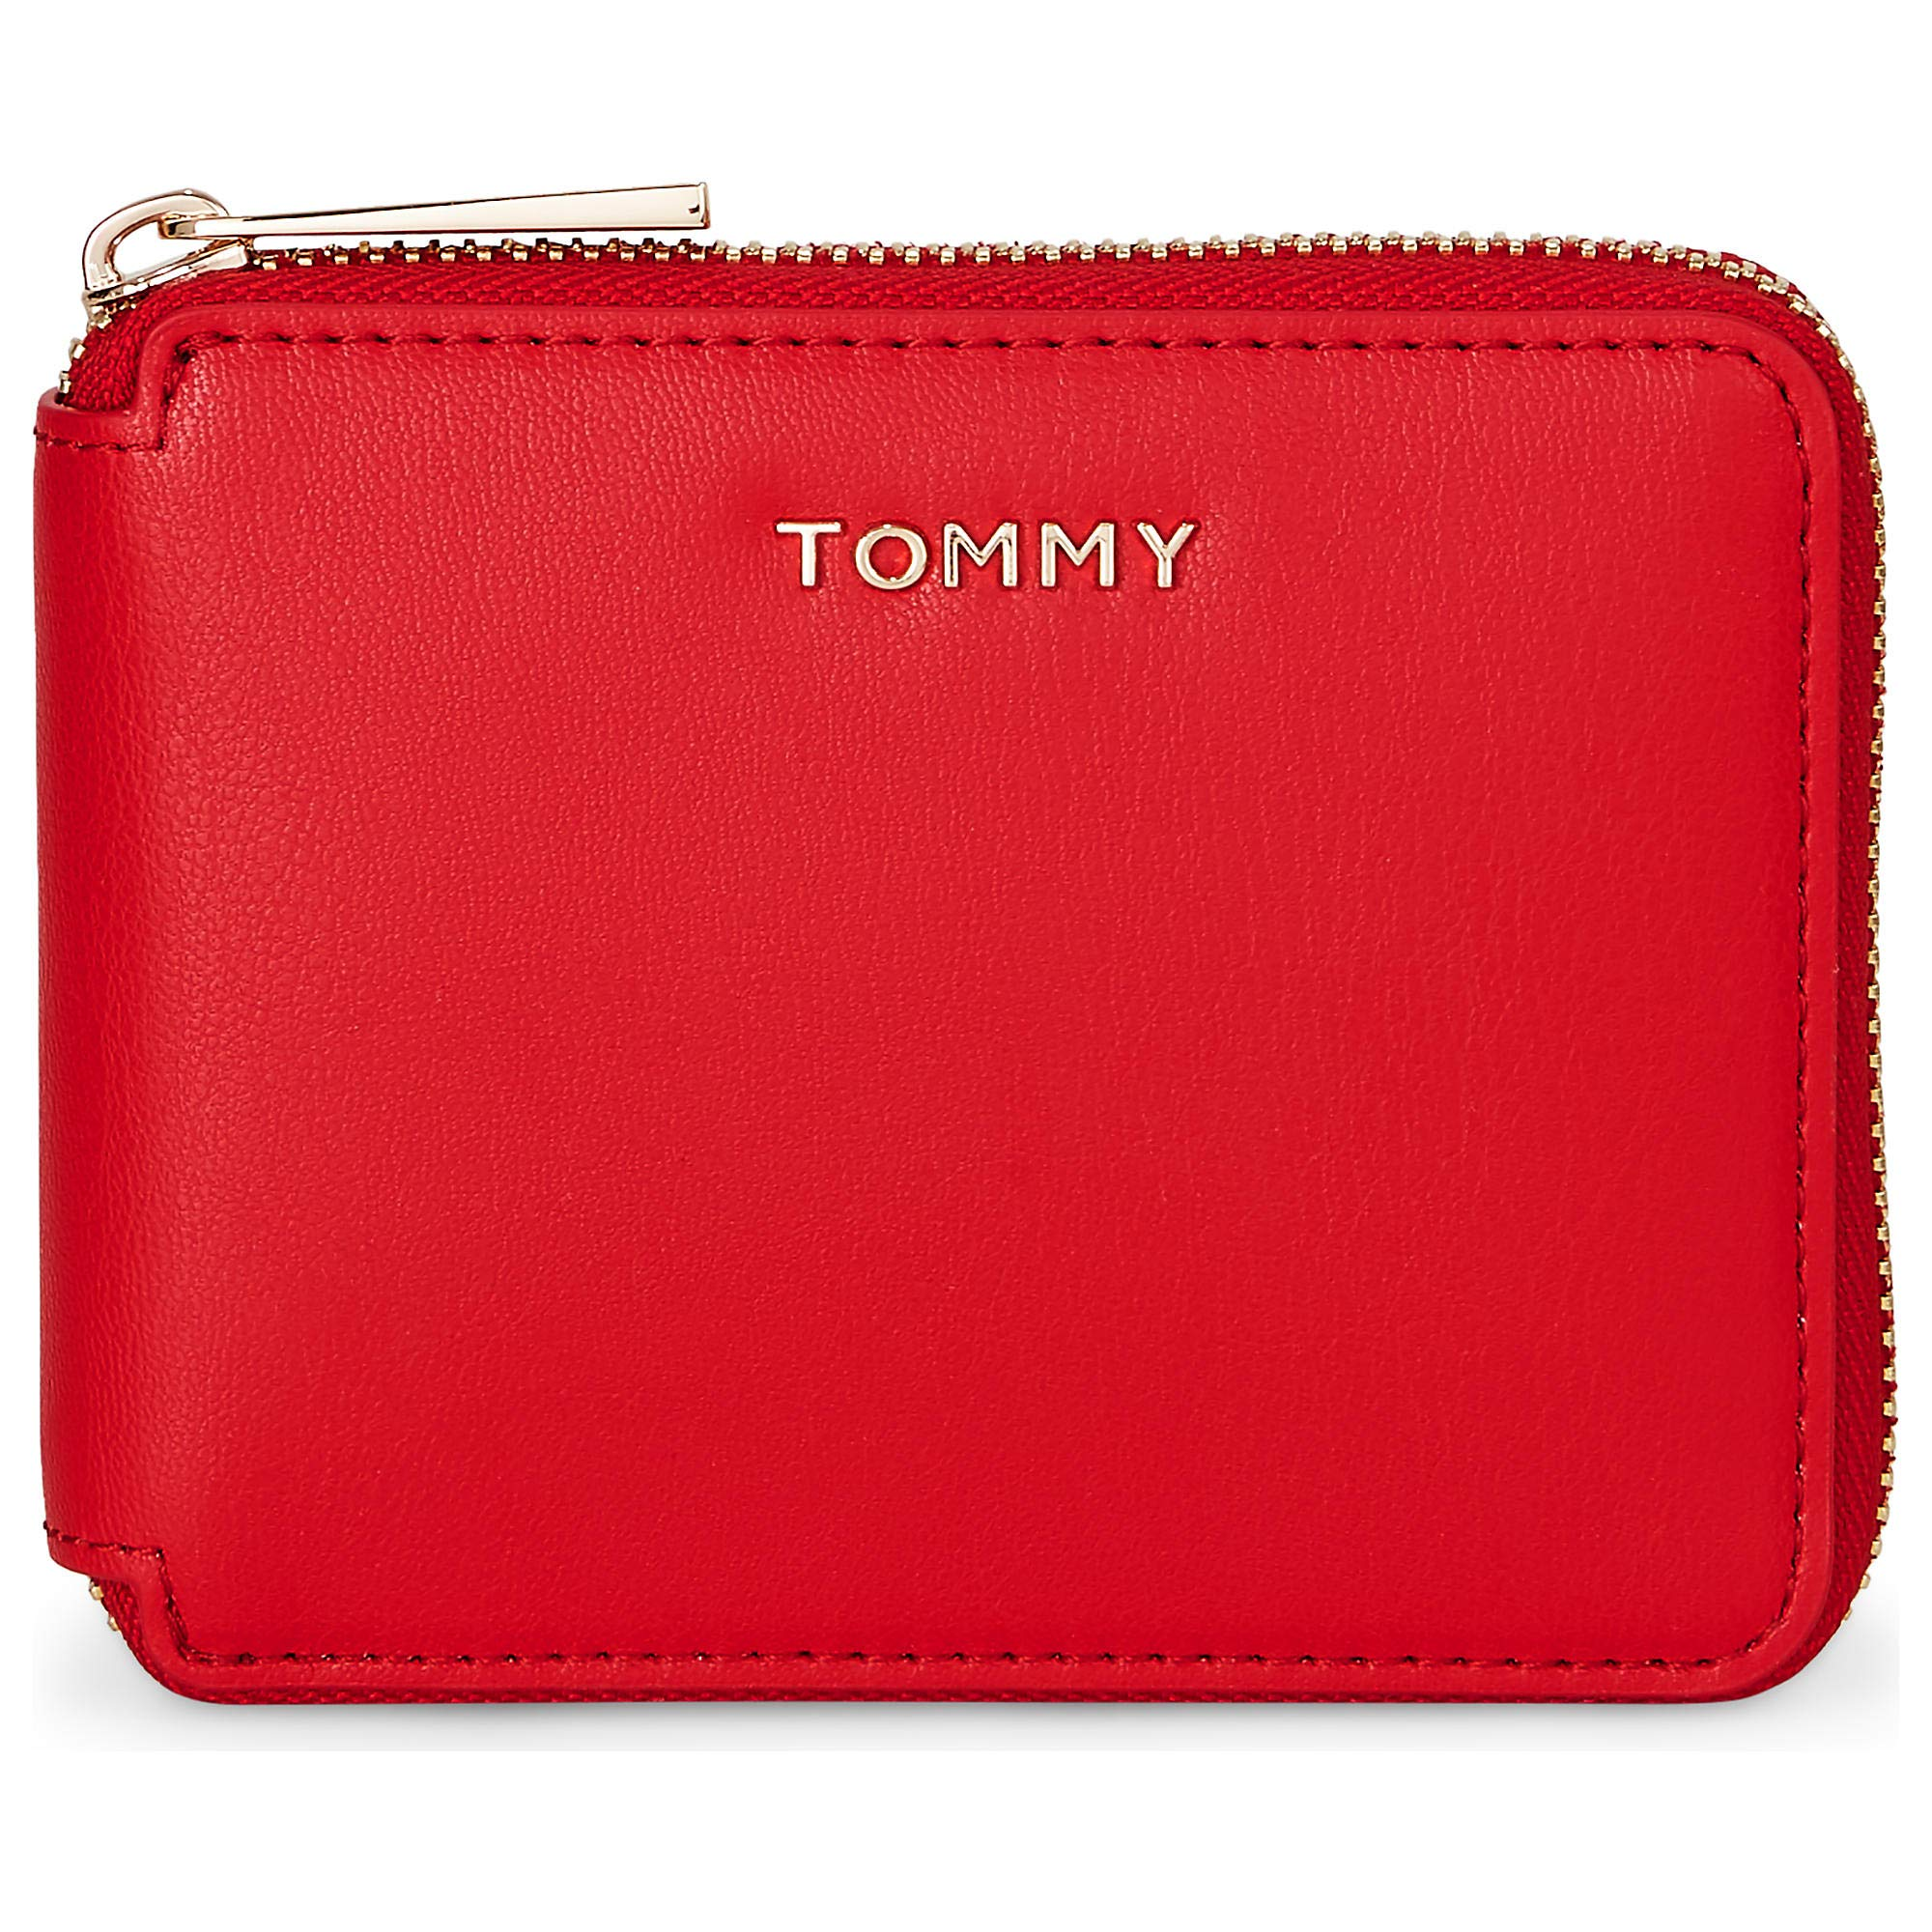 Tommy Hilfiger ICONIC TOMMY MED ZA, RED